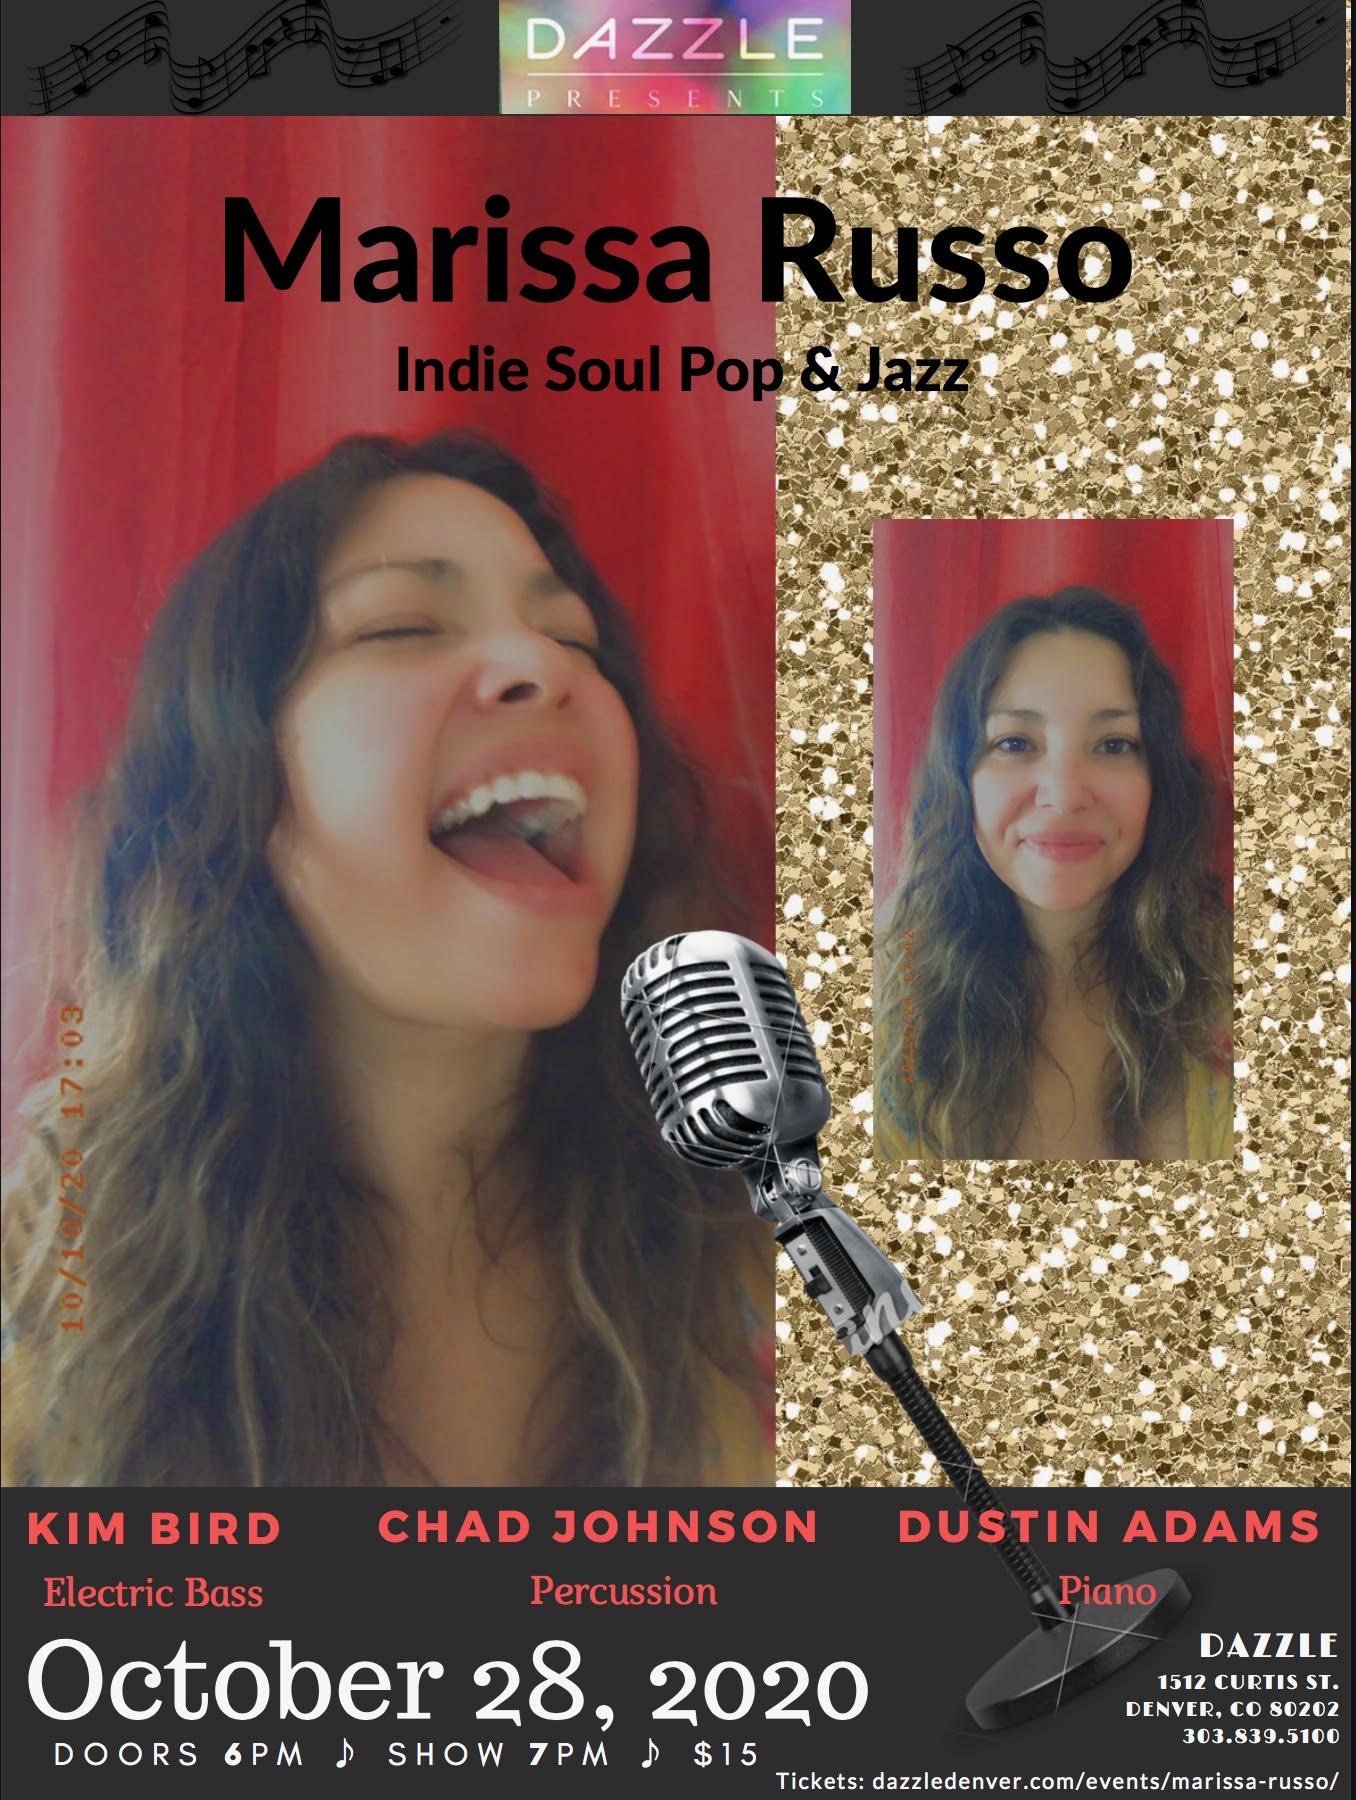 On Stage: Marissa Russo  (Indie Soul Pop)